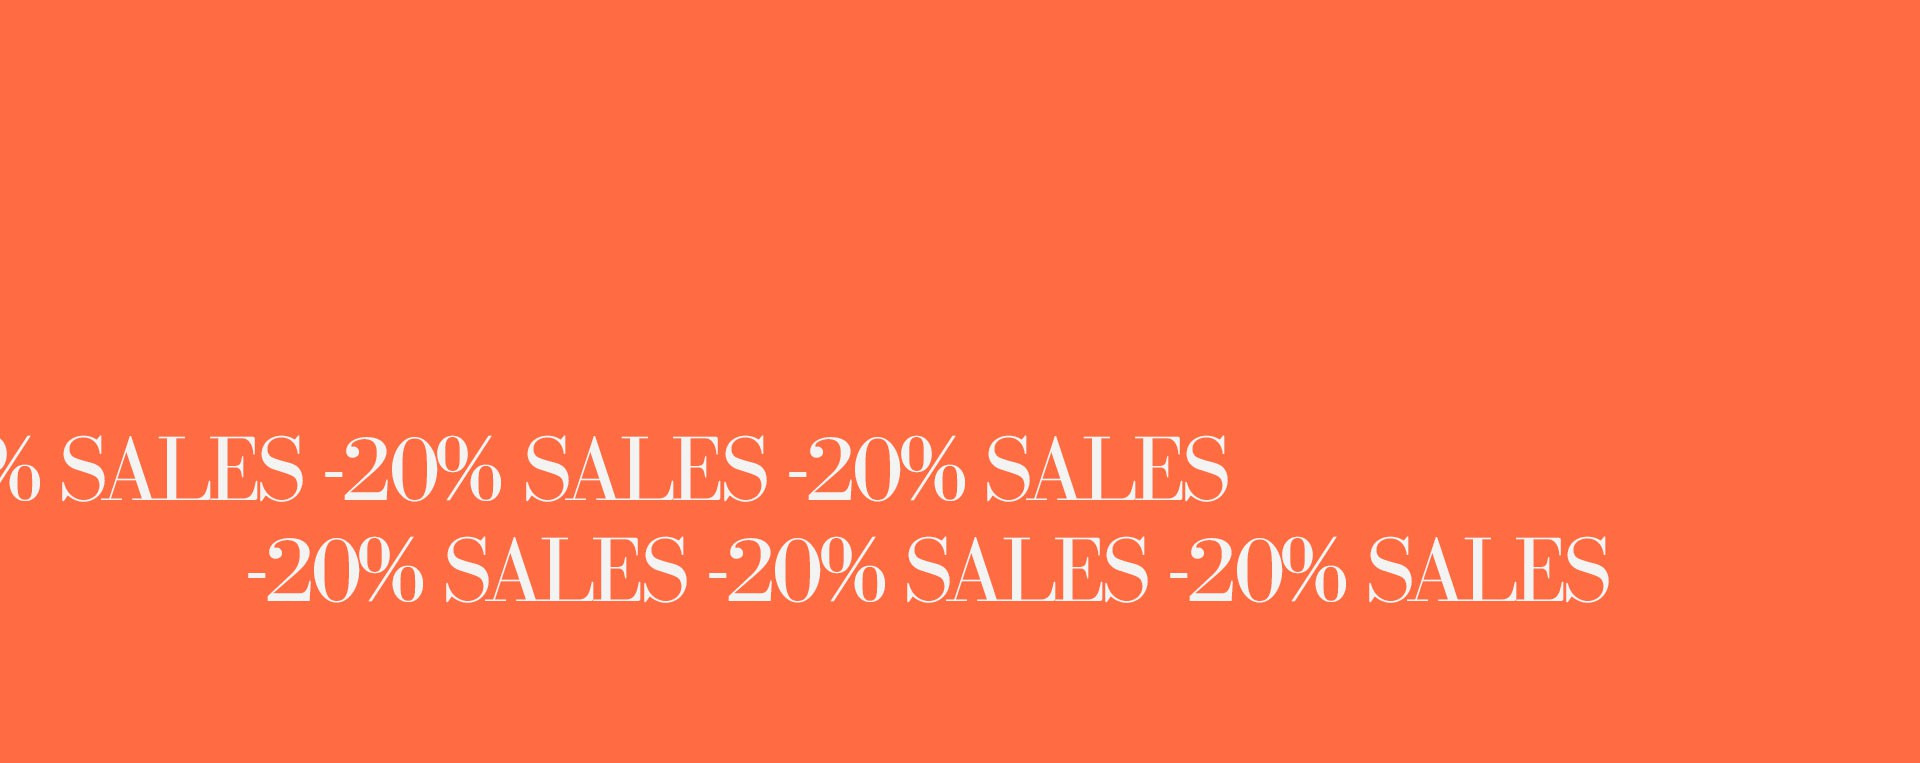 Soldes SS21 -20%